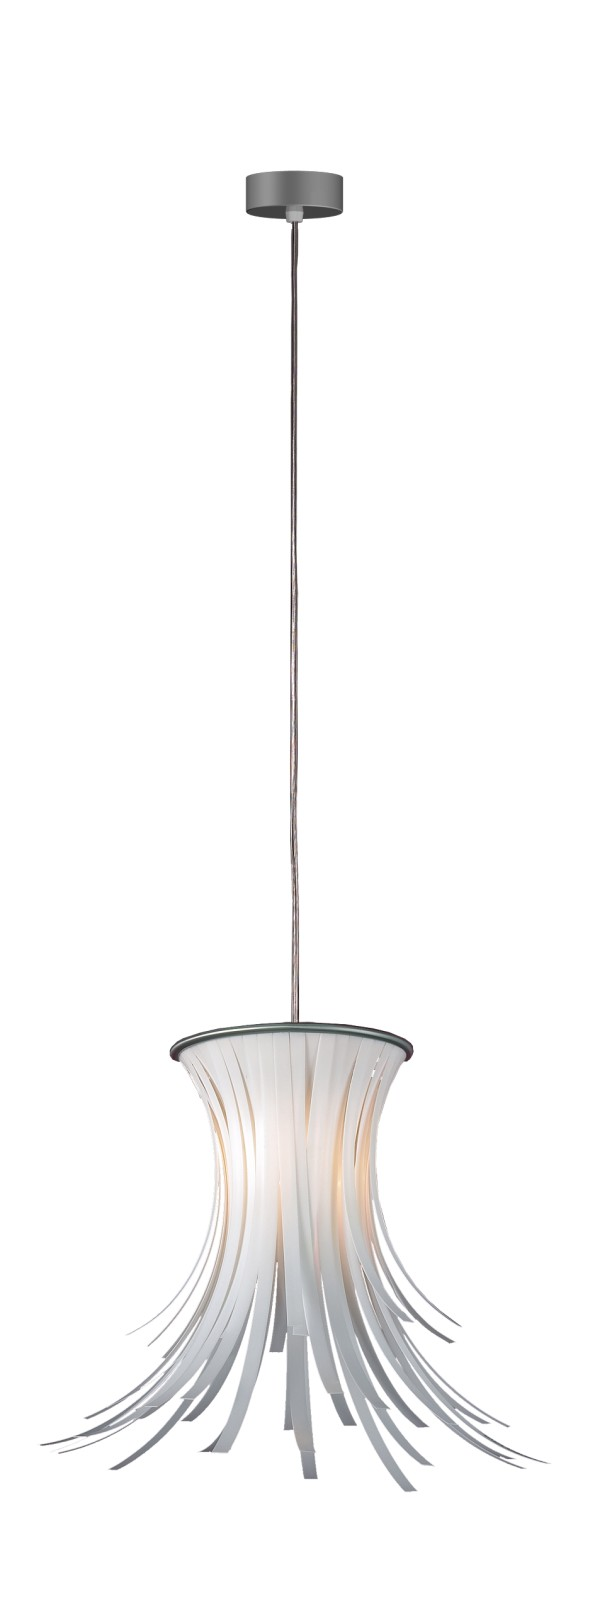 Bety Pendant Lamp Black Cable, White